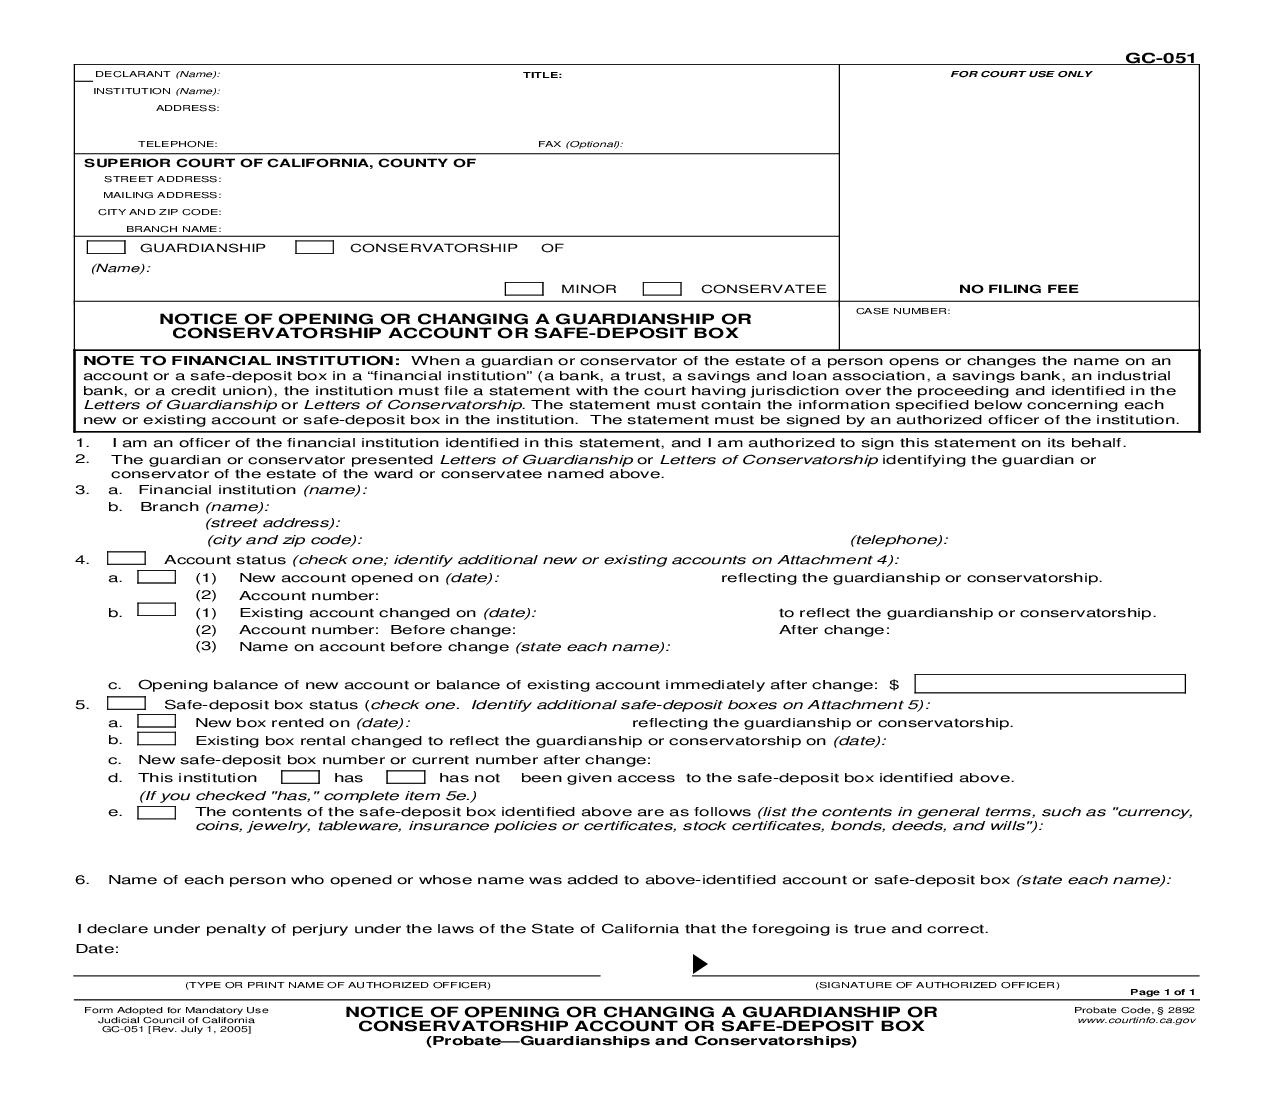 Notice Of Opening Or Changing A Guardianship Or Conservatorship Account Or Safe-Deposit Box (Probate-Guardianships) {GC-051} | Pdf Fpdf Doc Docx | California